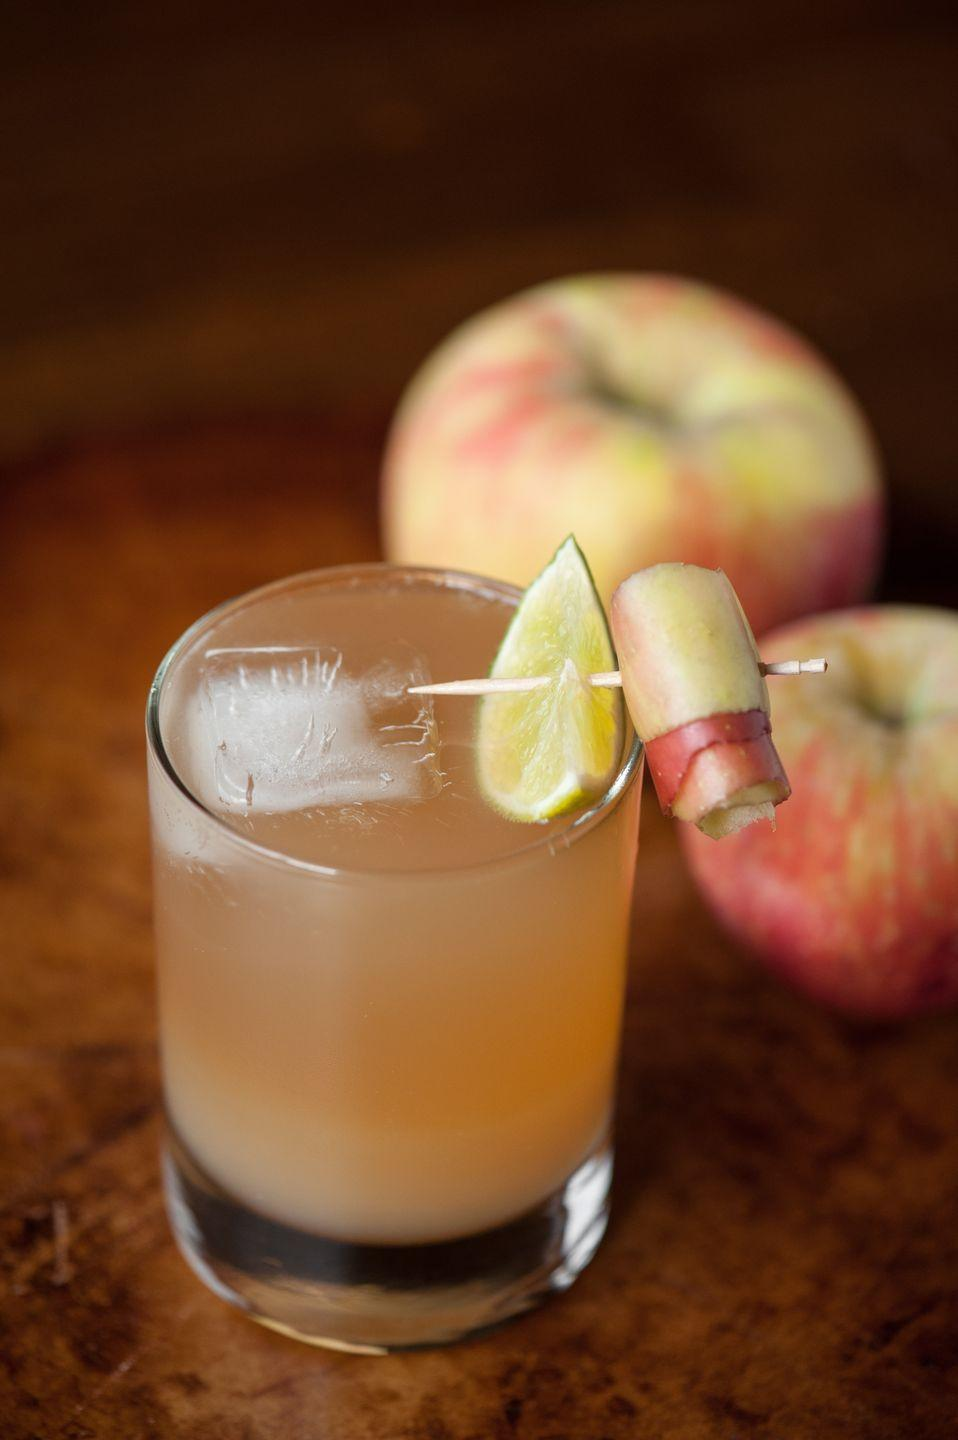 """<p>Ginger beer and apple cider make this bourbon cocktail a perfect autumn delight. It's ideal for both elegant autumn dinner parties or pizza night.<br></p><p><a class=""""link rapid-noclick-resp"""" href=""""https://selfproclaimedfoodie.com/apple-ginger-stone-wall-cocktail/"""" rel=""""nofollow noopener"""" target=""""_blank"""" data-ylk=""""slk:GET THE RECIPE"""">GET THE RECIPE</a></p>"""